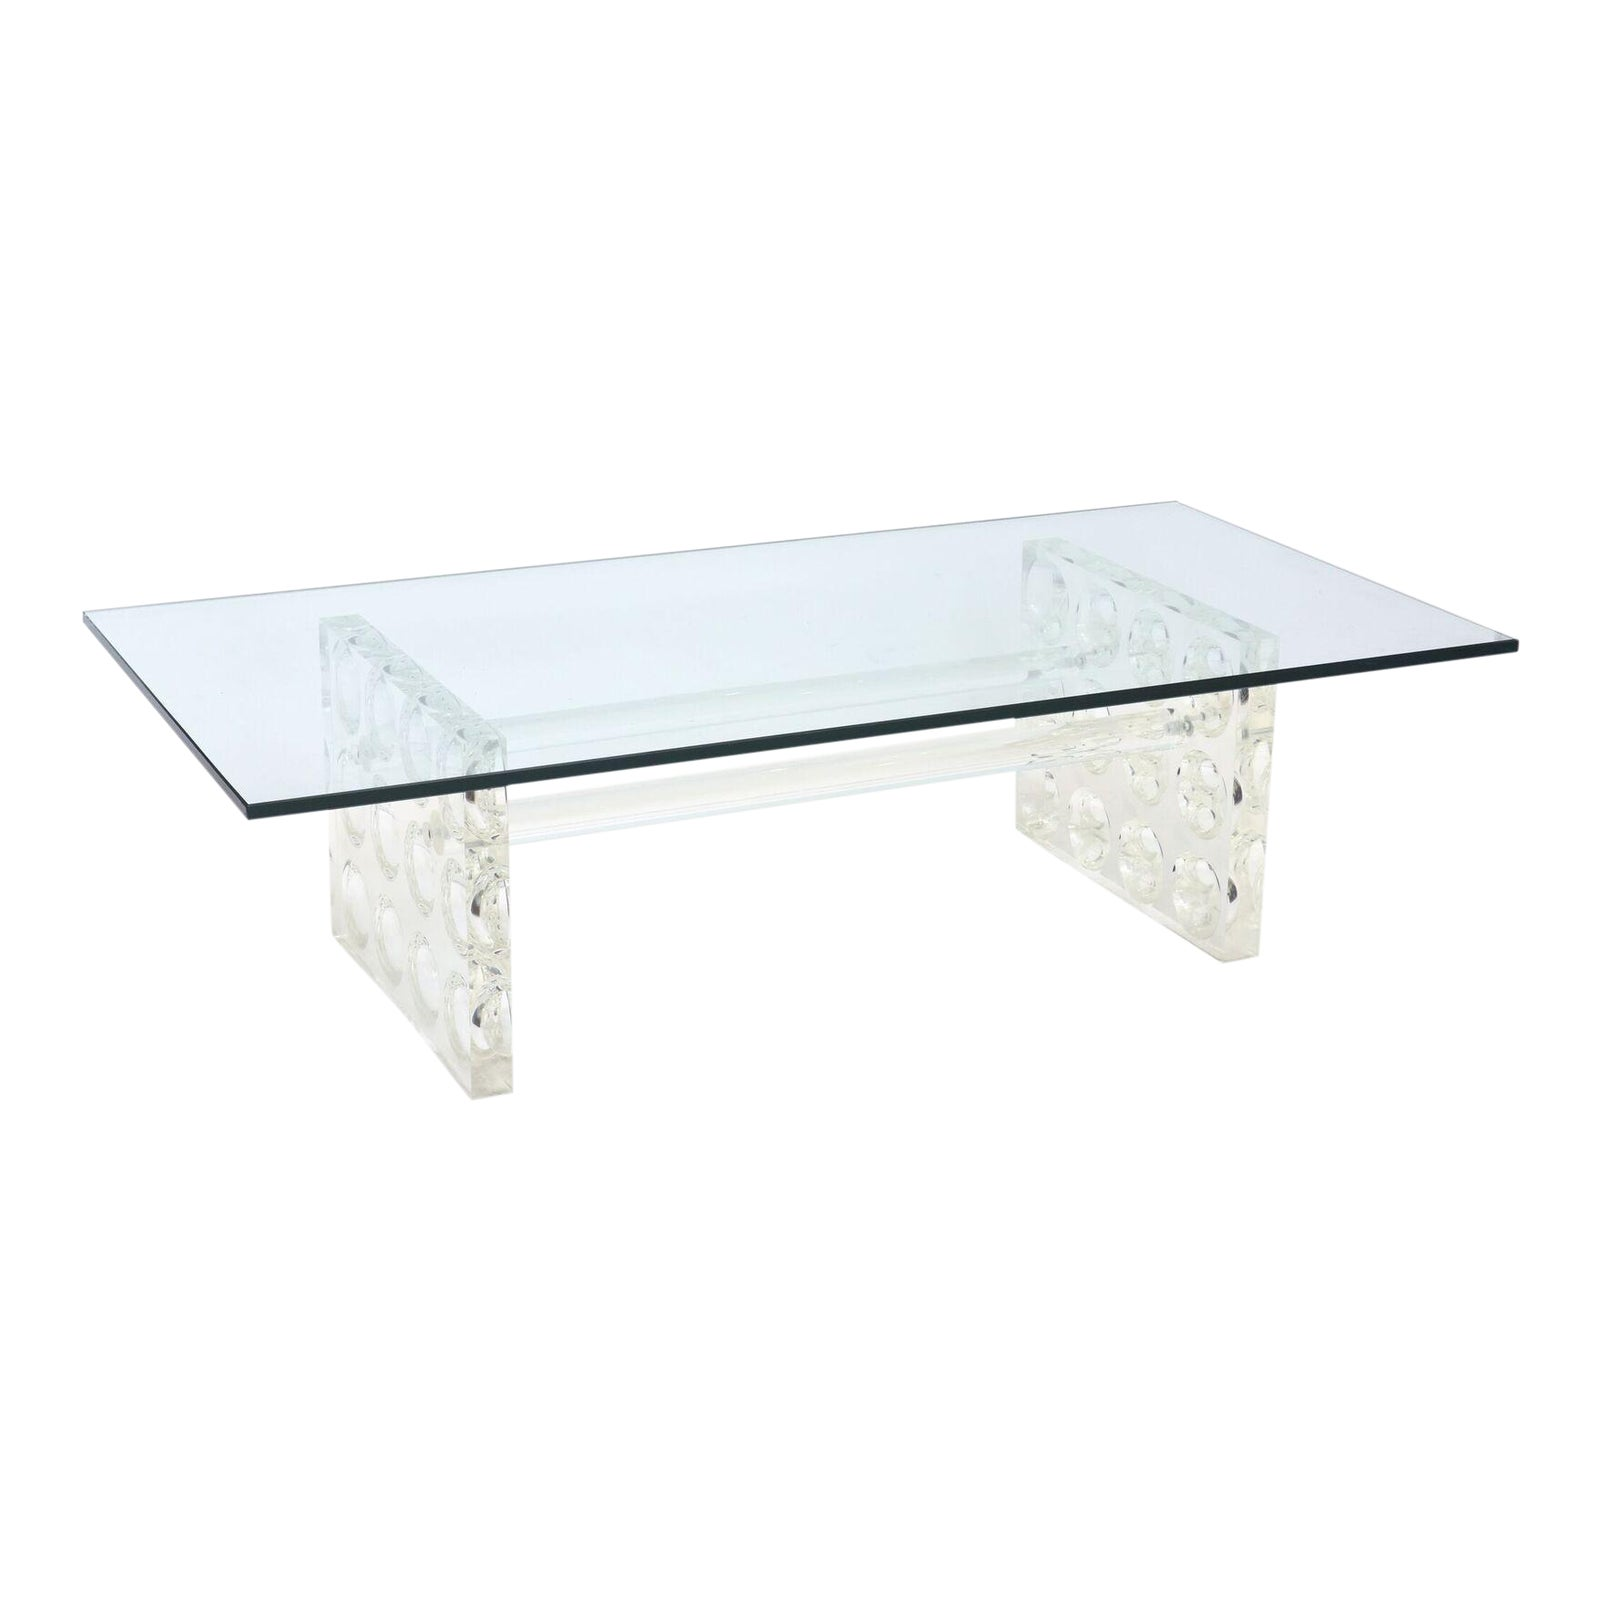 Lovely American Modern Lucite And Glass Low Table, Charles Hollis